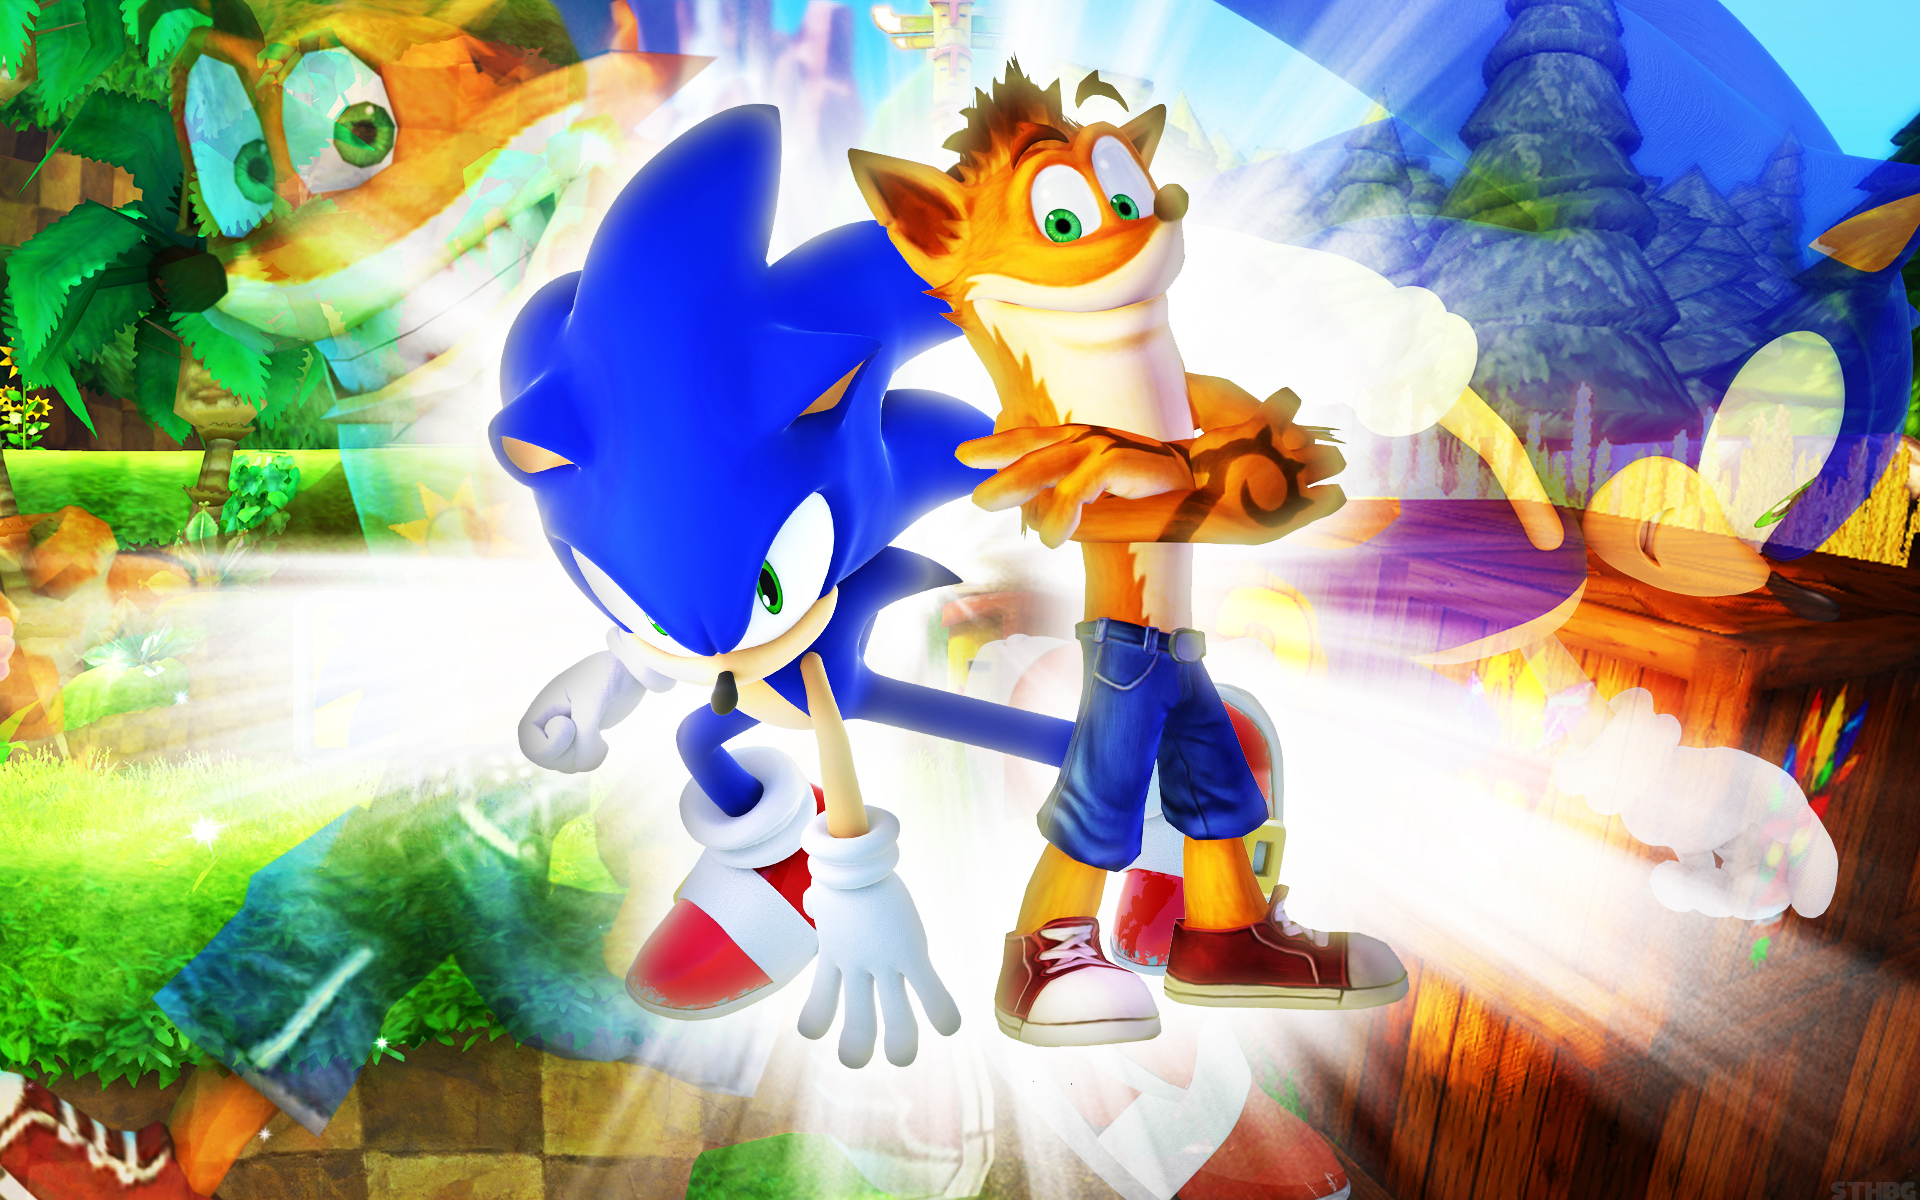 Desktop Wallpaper Sonic The Hedgehog Game Hd Image Picture Background B38627